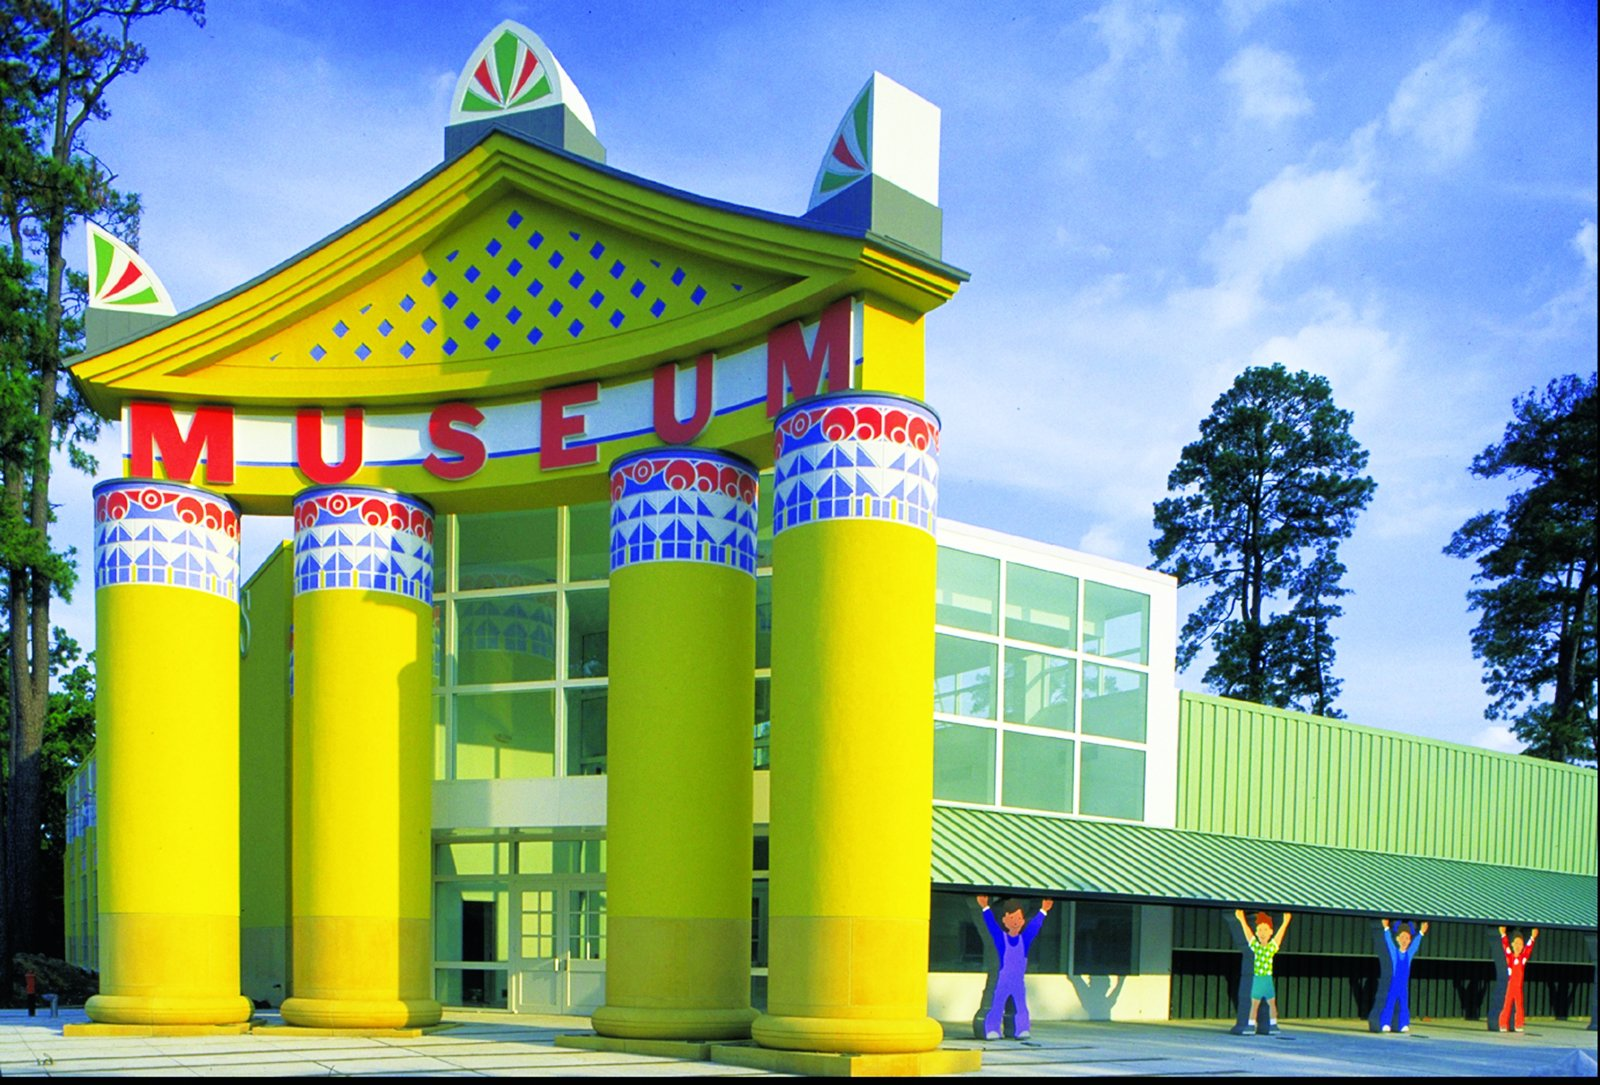 The Children's Museum of Houston is one of the city's many attractions and was designed by acclaimed American architect Robert Venturi. Visit the museum online at cmhouston.org.  Photo 16 of 17 in Houston, Texas